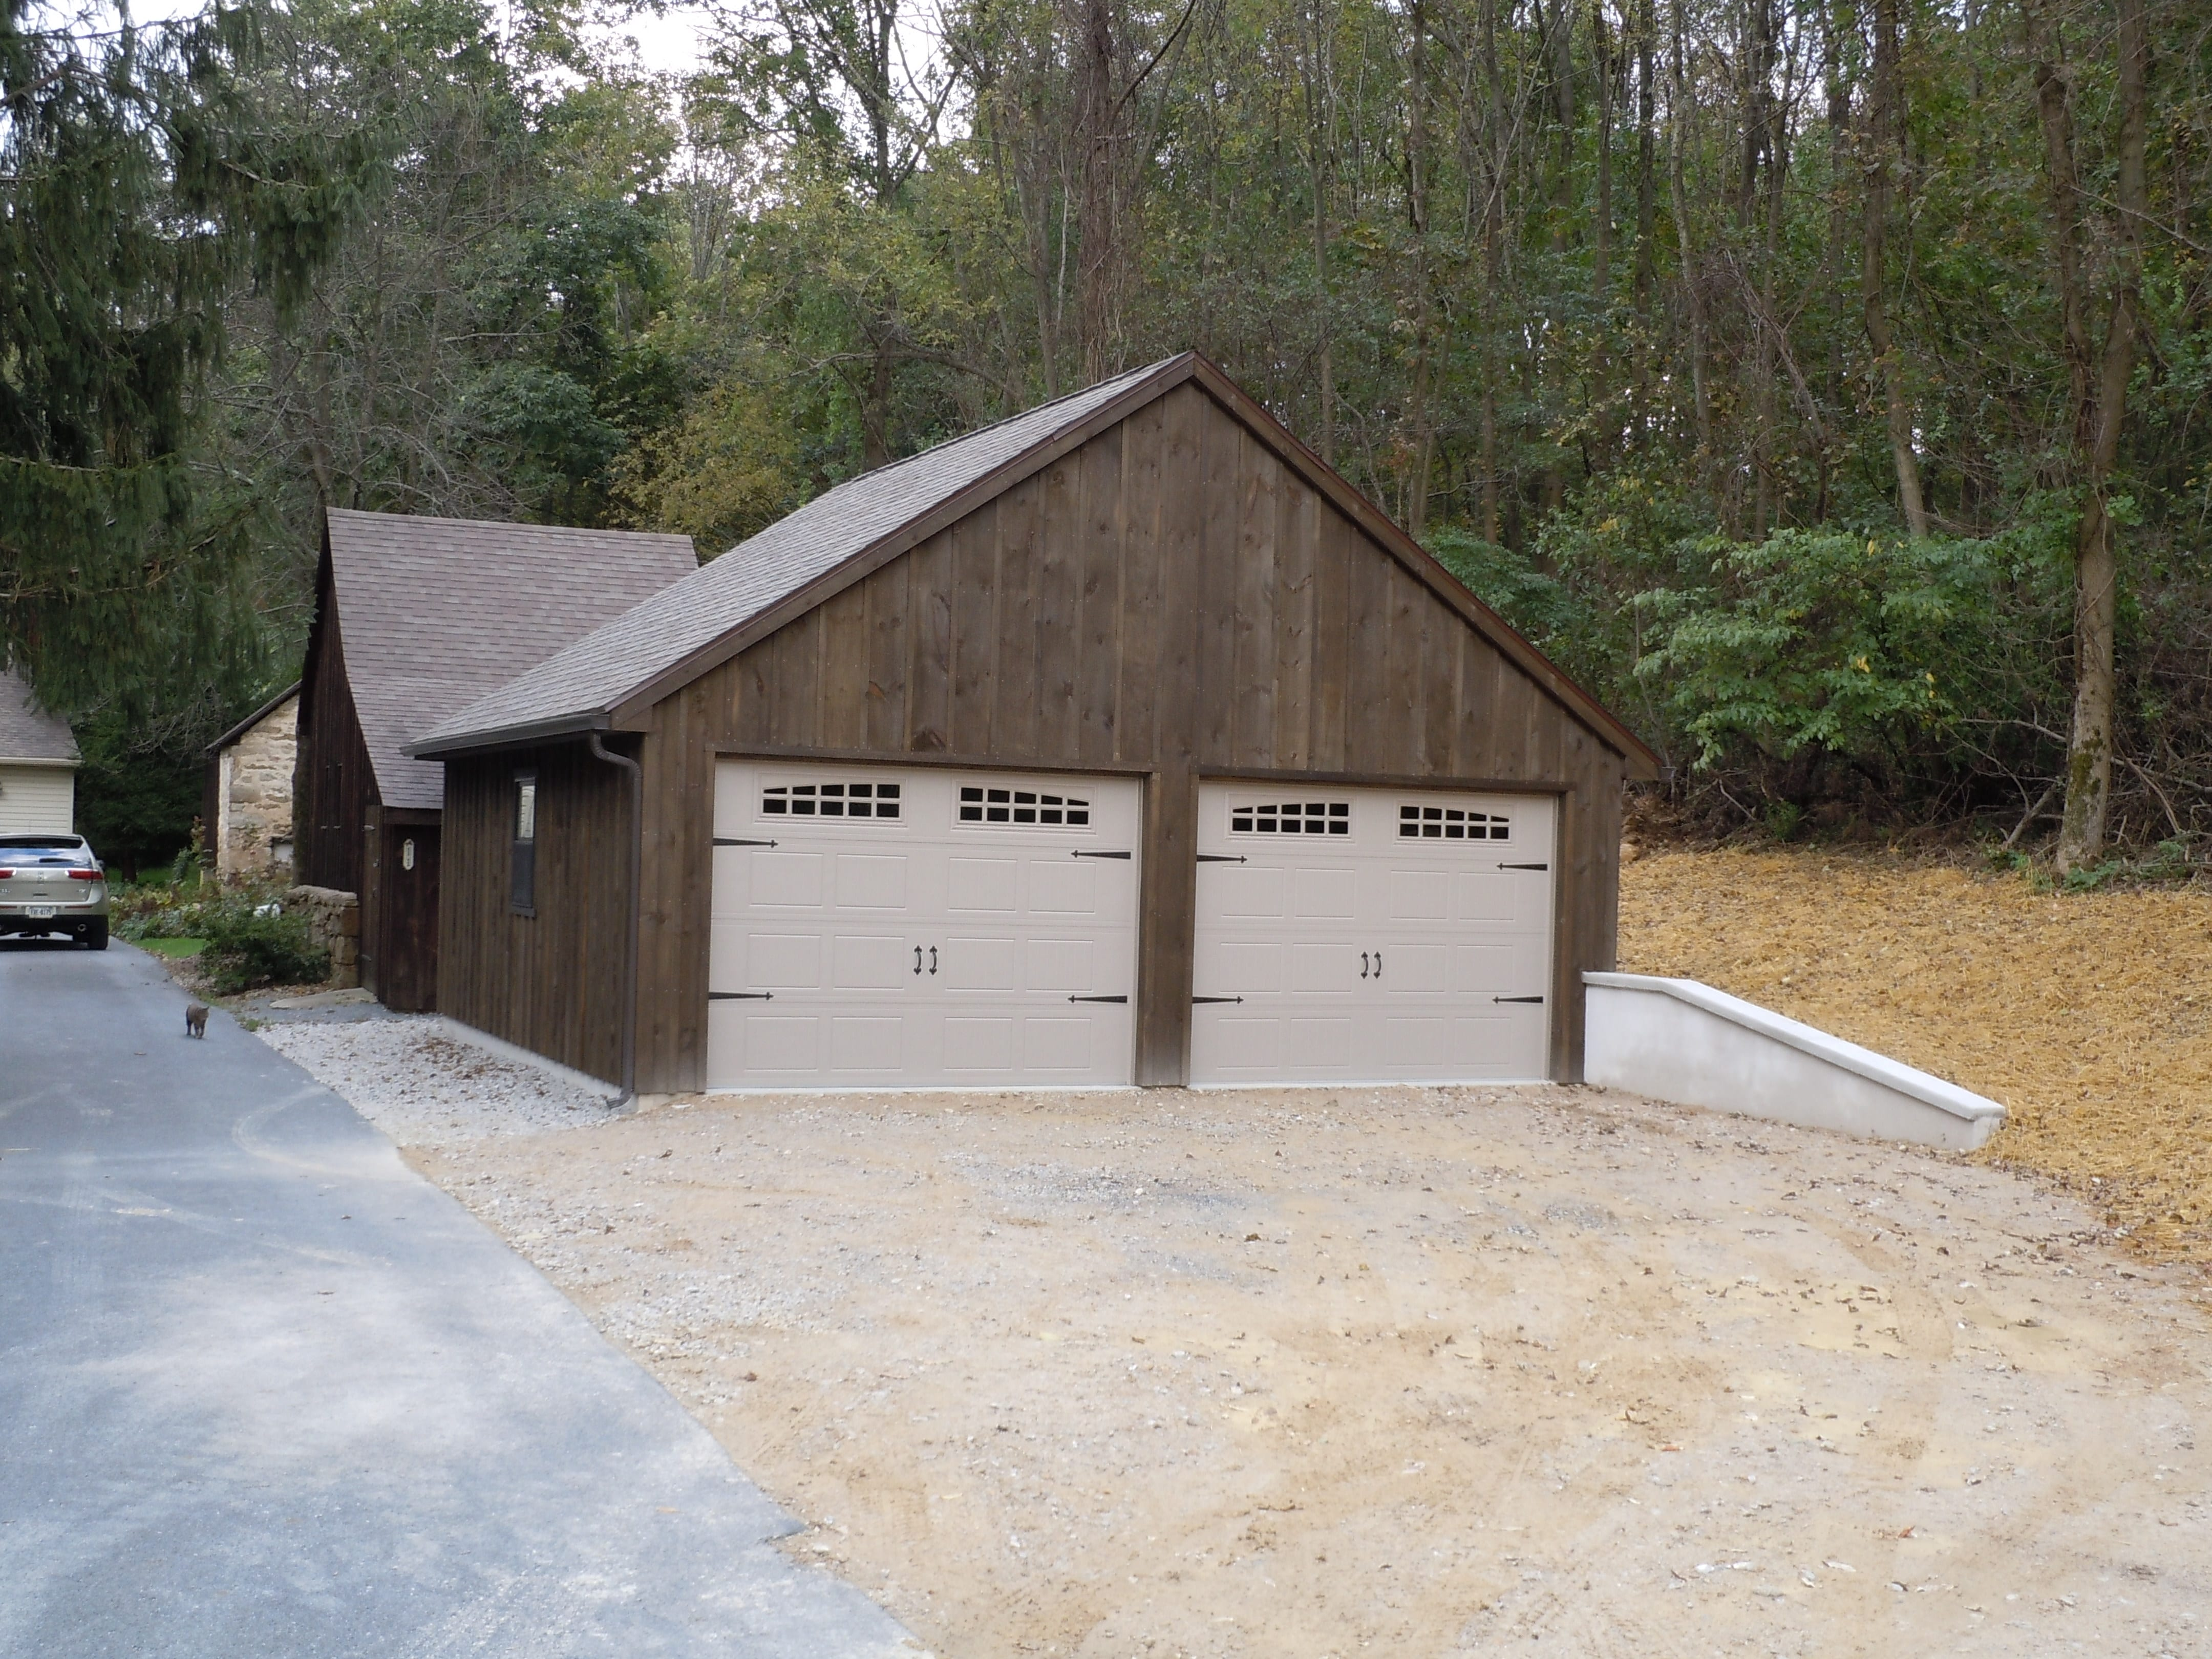 Rustic garage with white garage doors